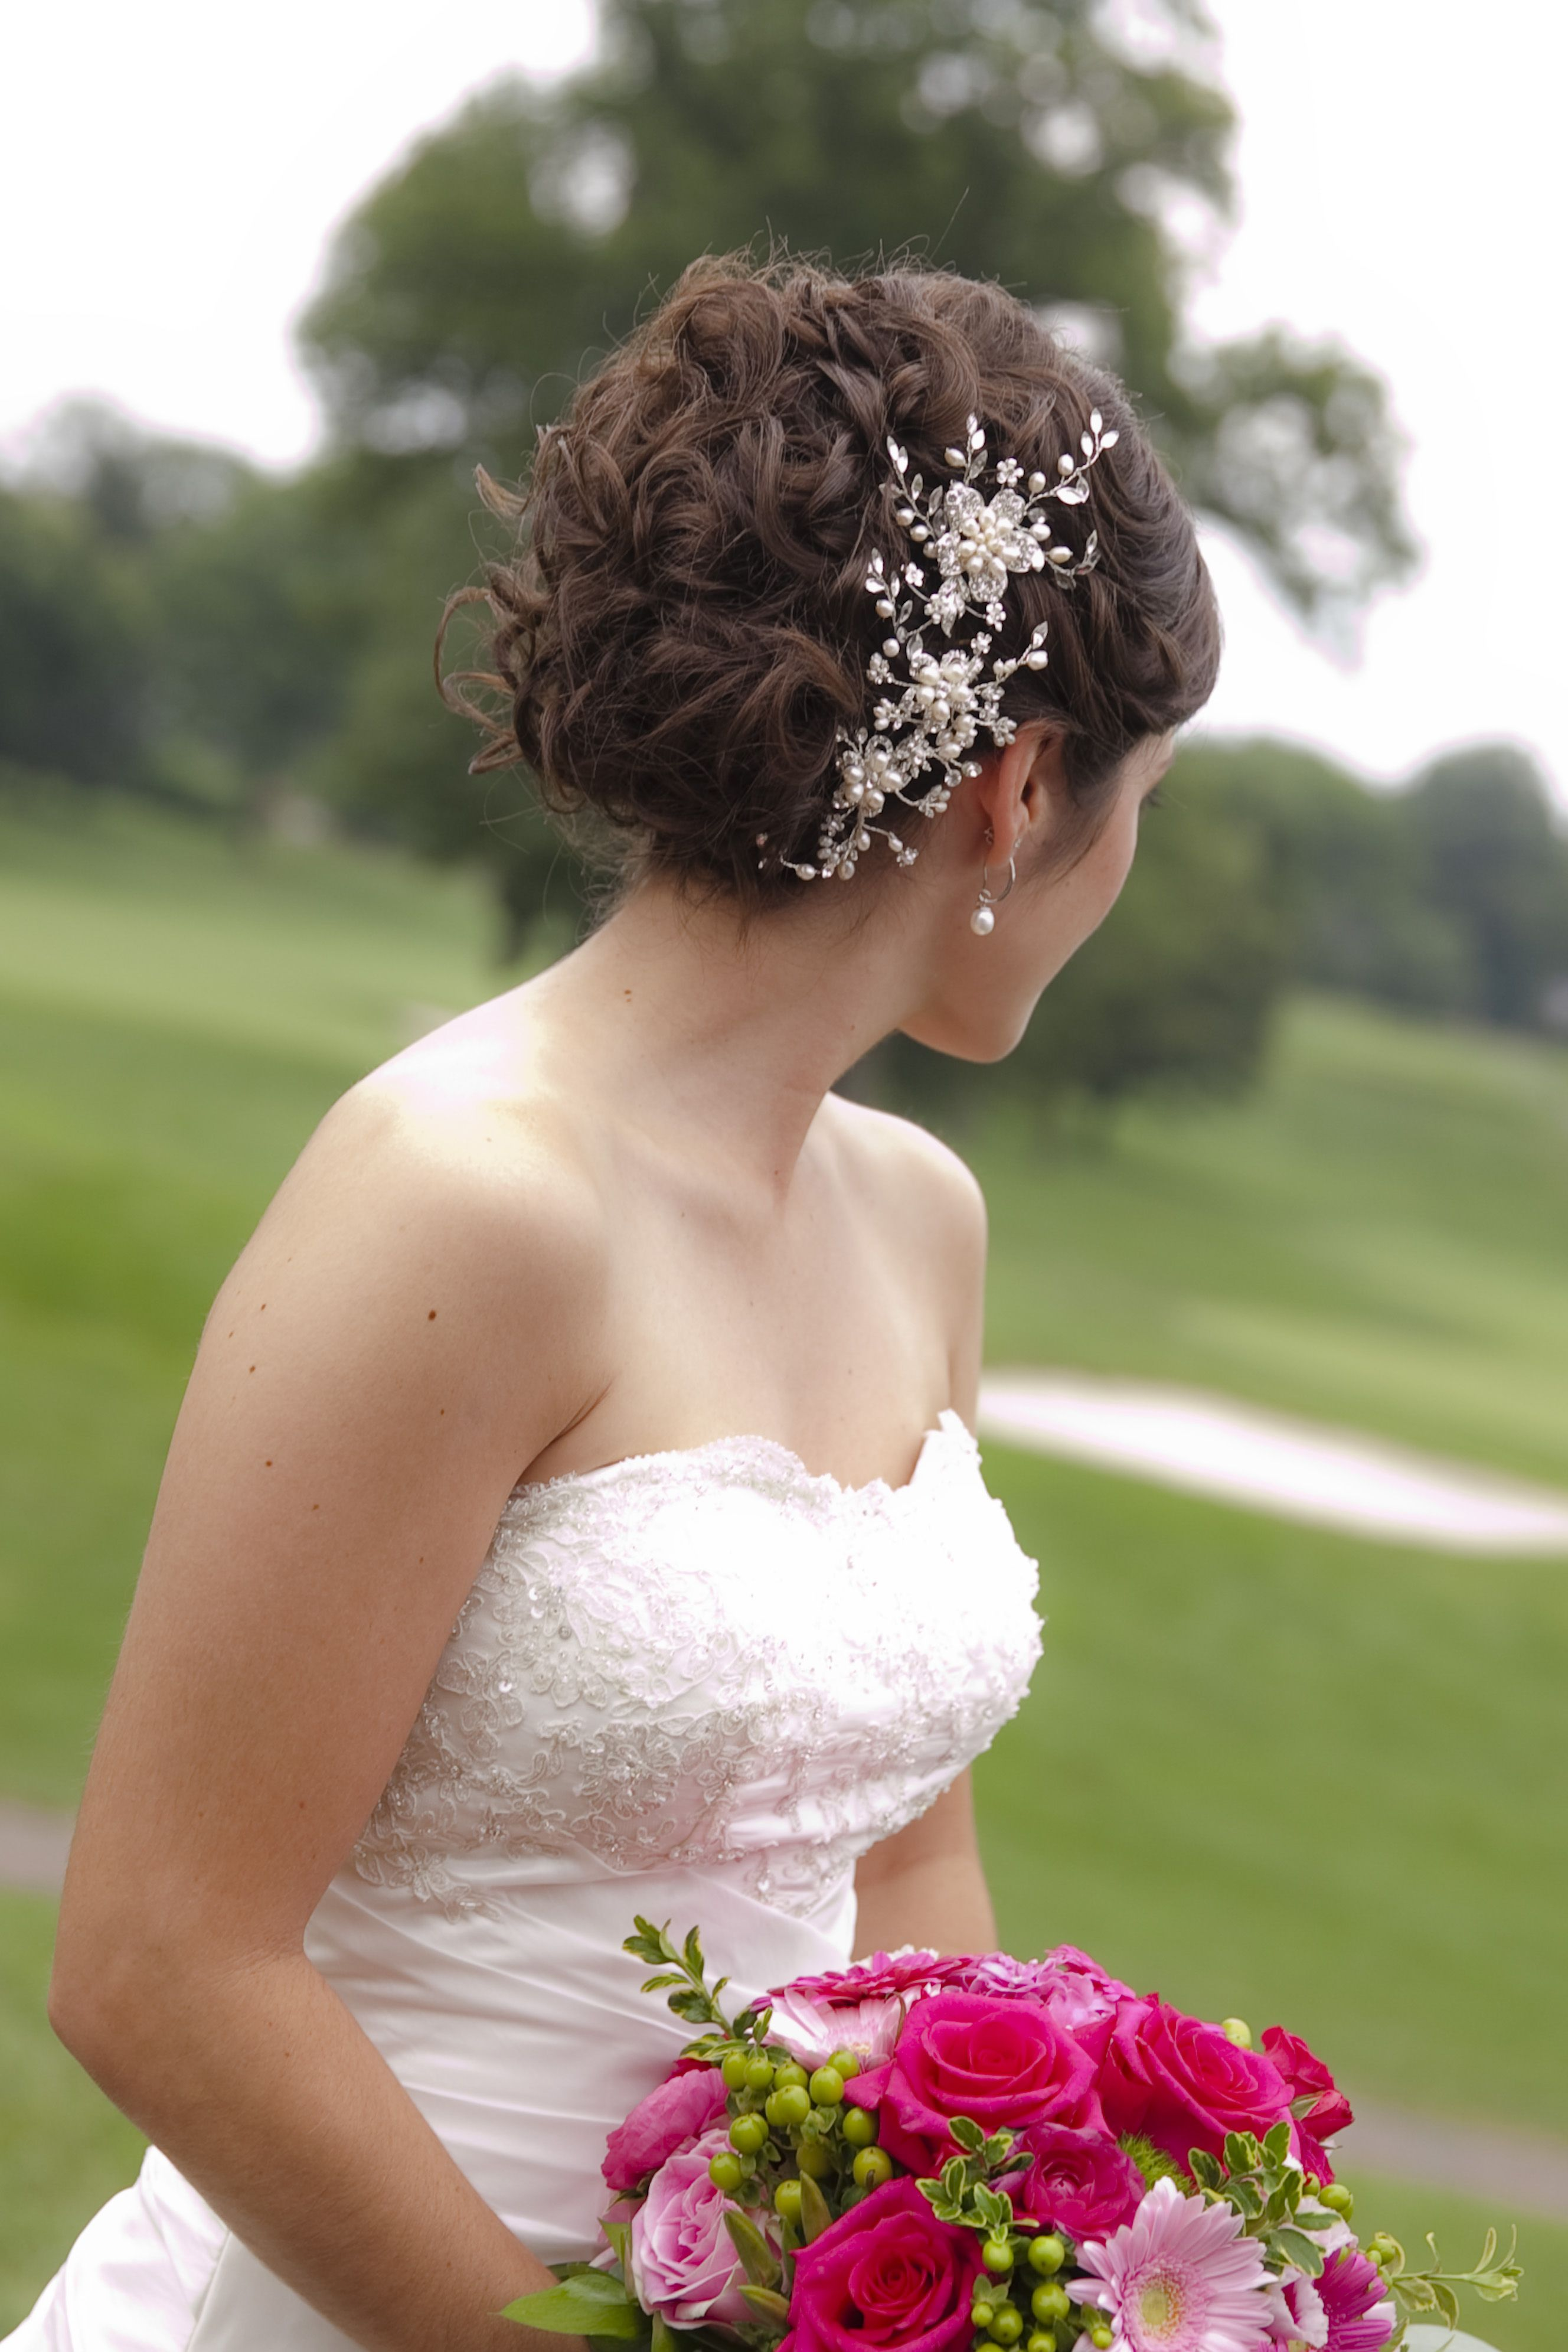 Wedding Up Do No Veil Bride Wedding Hairpiece Up Do By Rosa Luxe Salon Spa Lancaster Pa Photo By Ruthie Wedding Hair Pieces Wedding Up Do Hair Pieces [ 3983 x 2656 Pixel ]